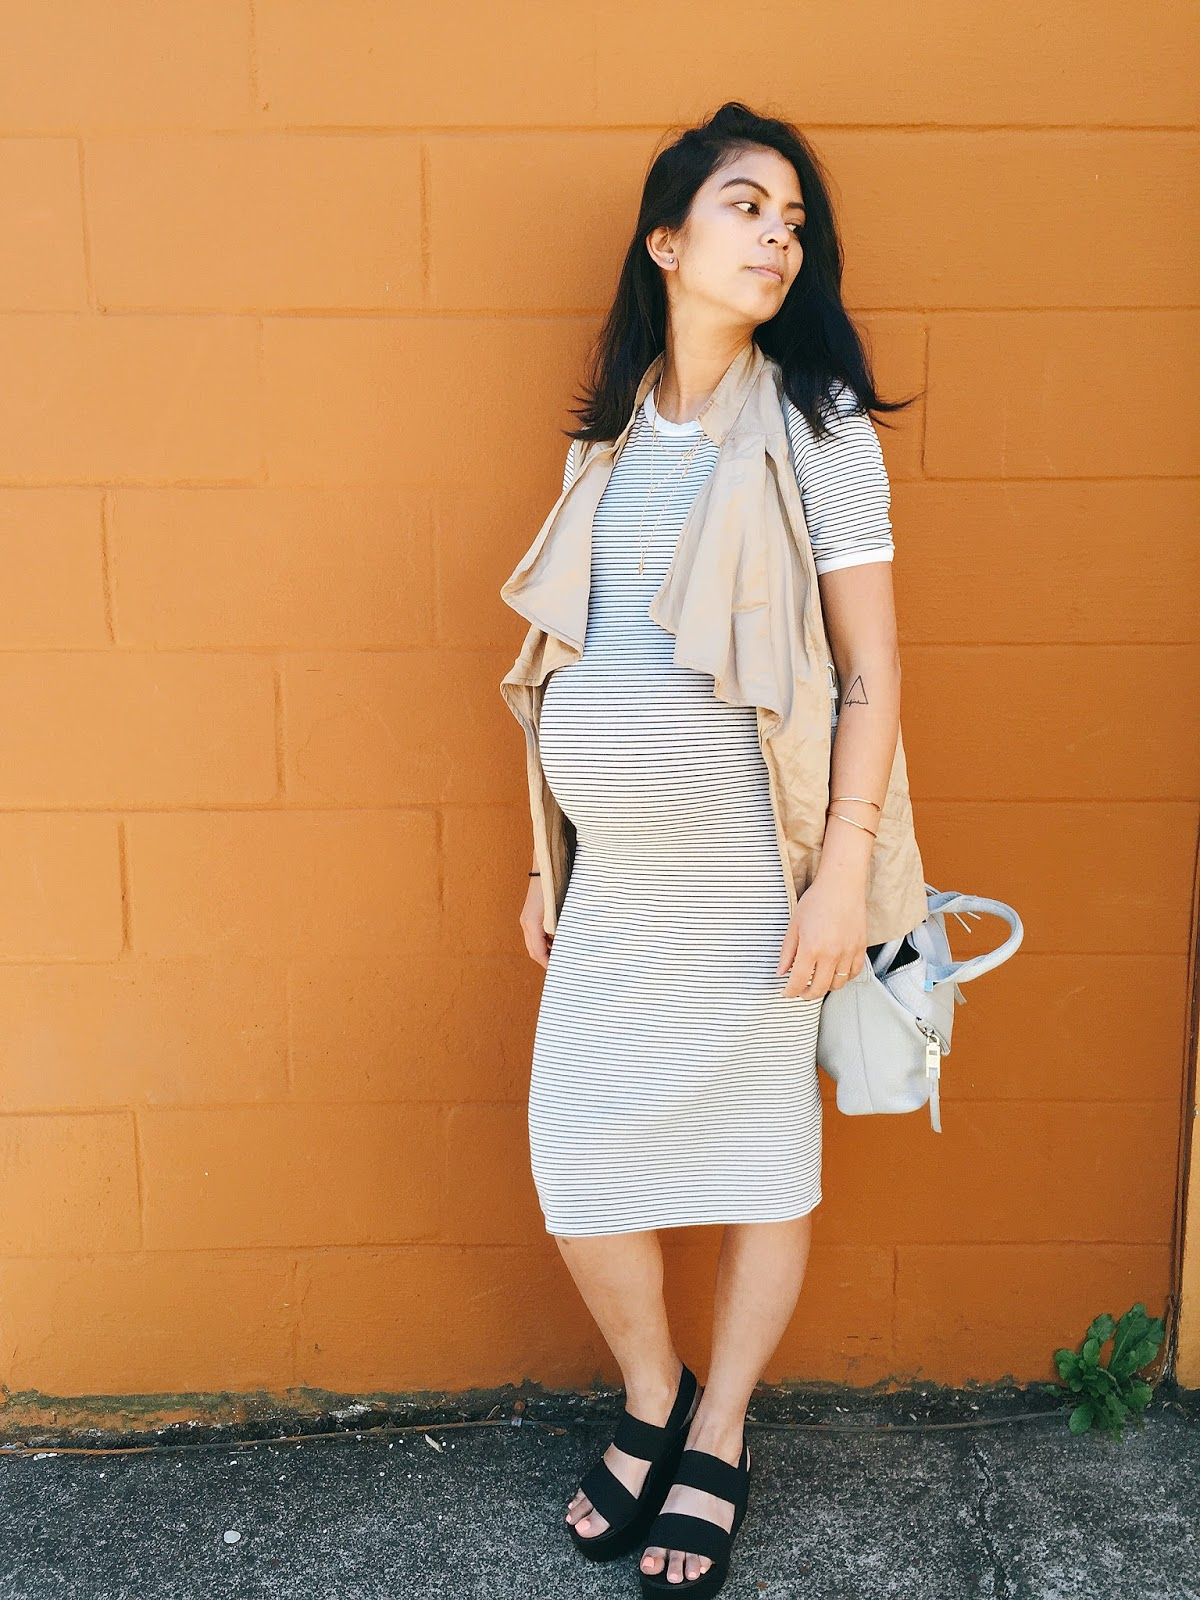 fashion blogger, portland fashion blogger, white dress, pink sunglasses, gray bag, nude sandals, summer look food, thrifted finds, shop spanky's consignment store, portland style